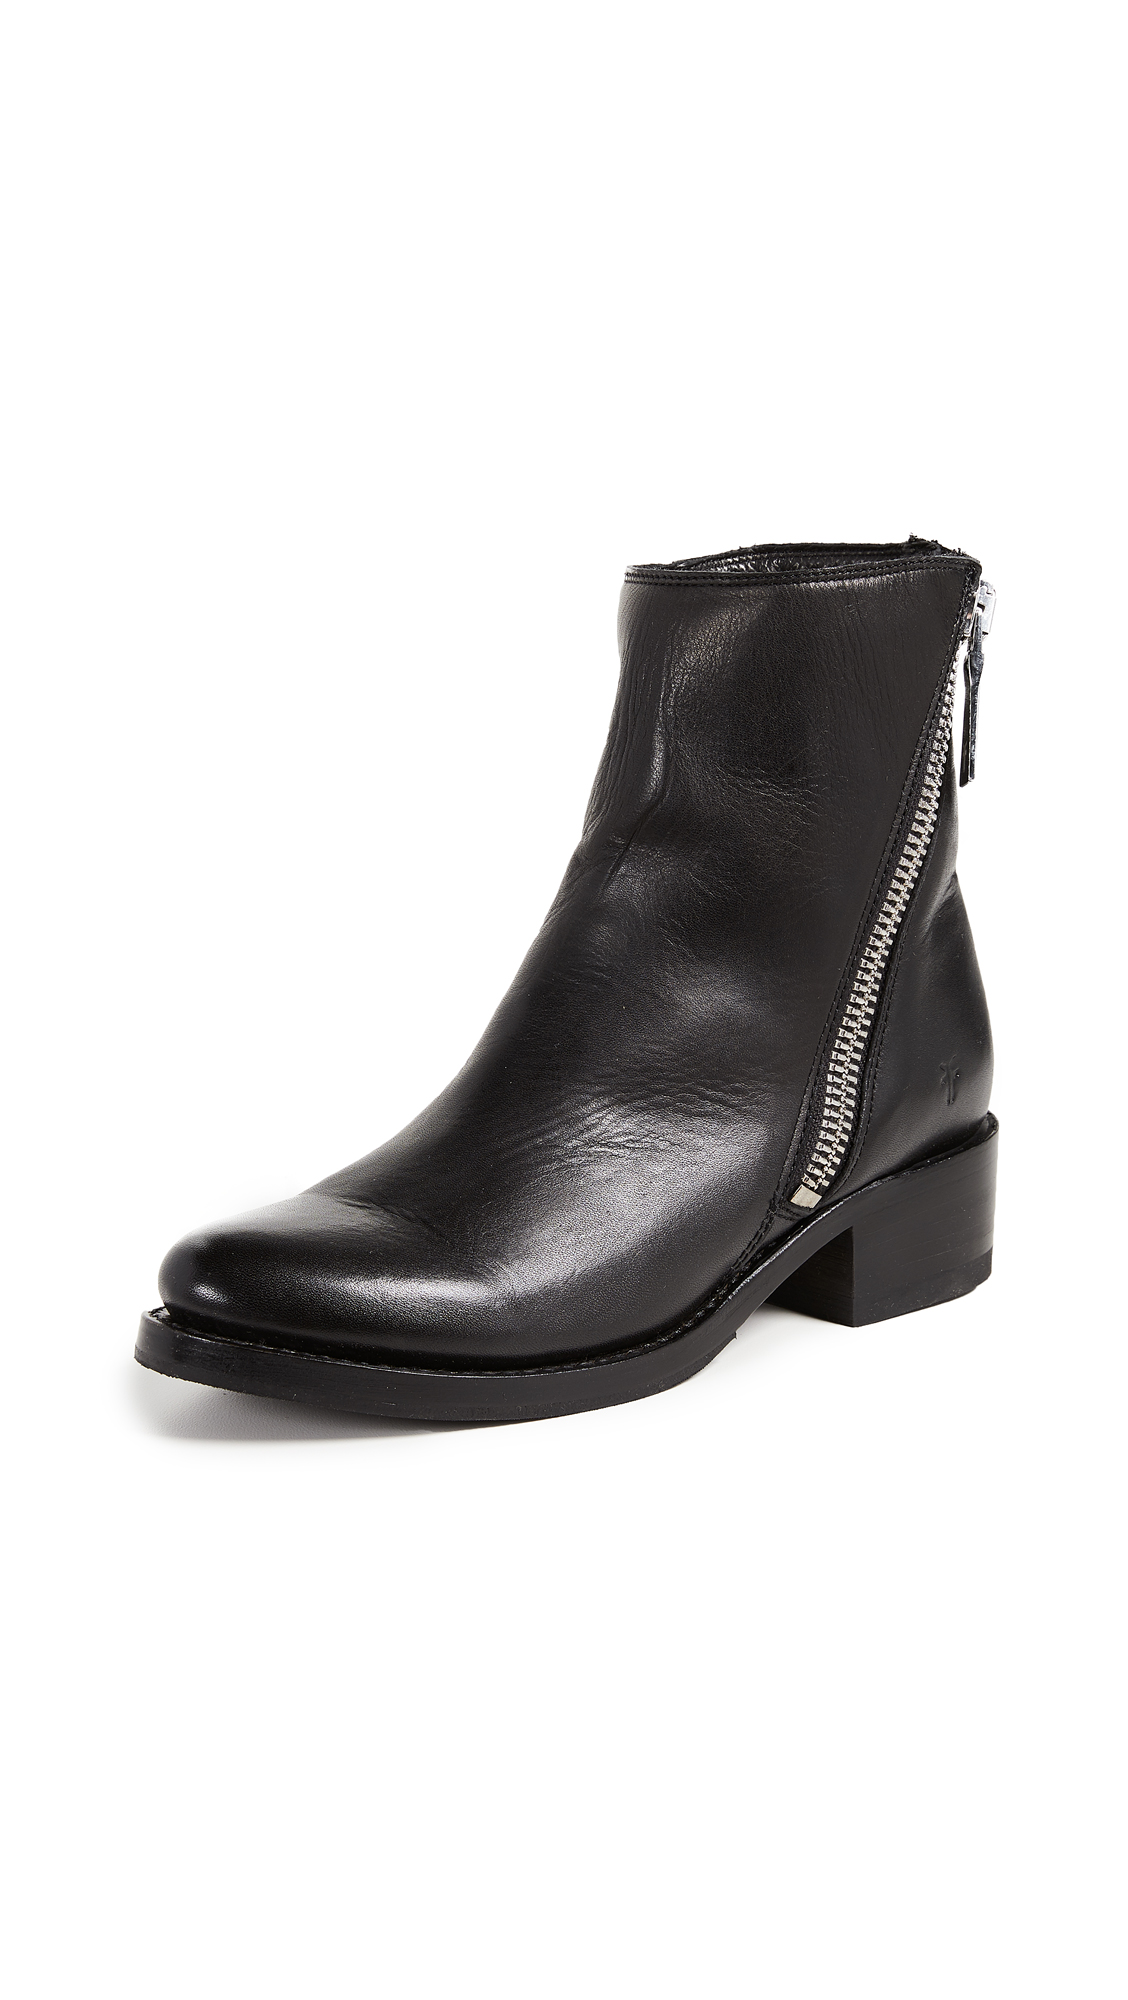 Frye Demi Zip Boots - Black